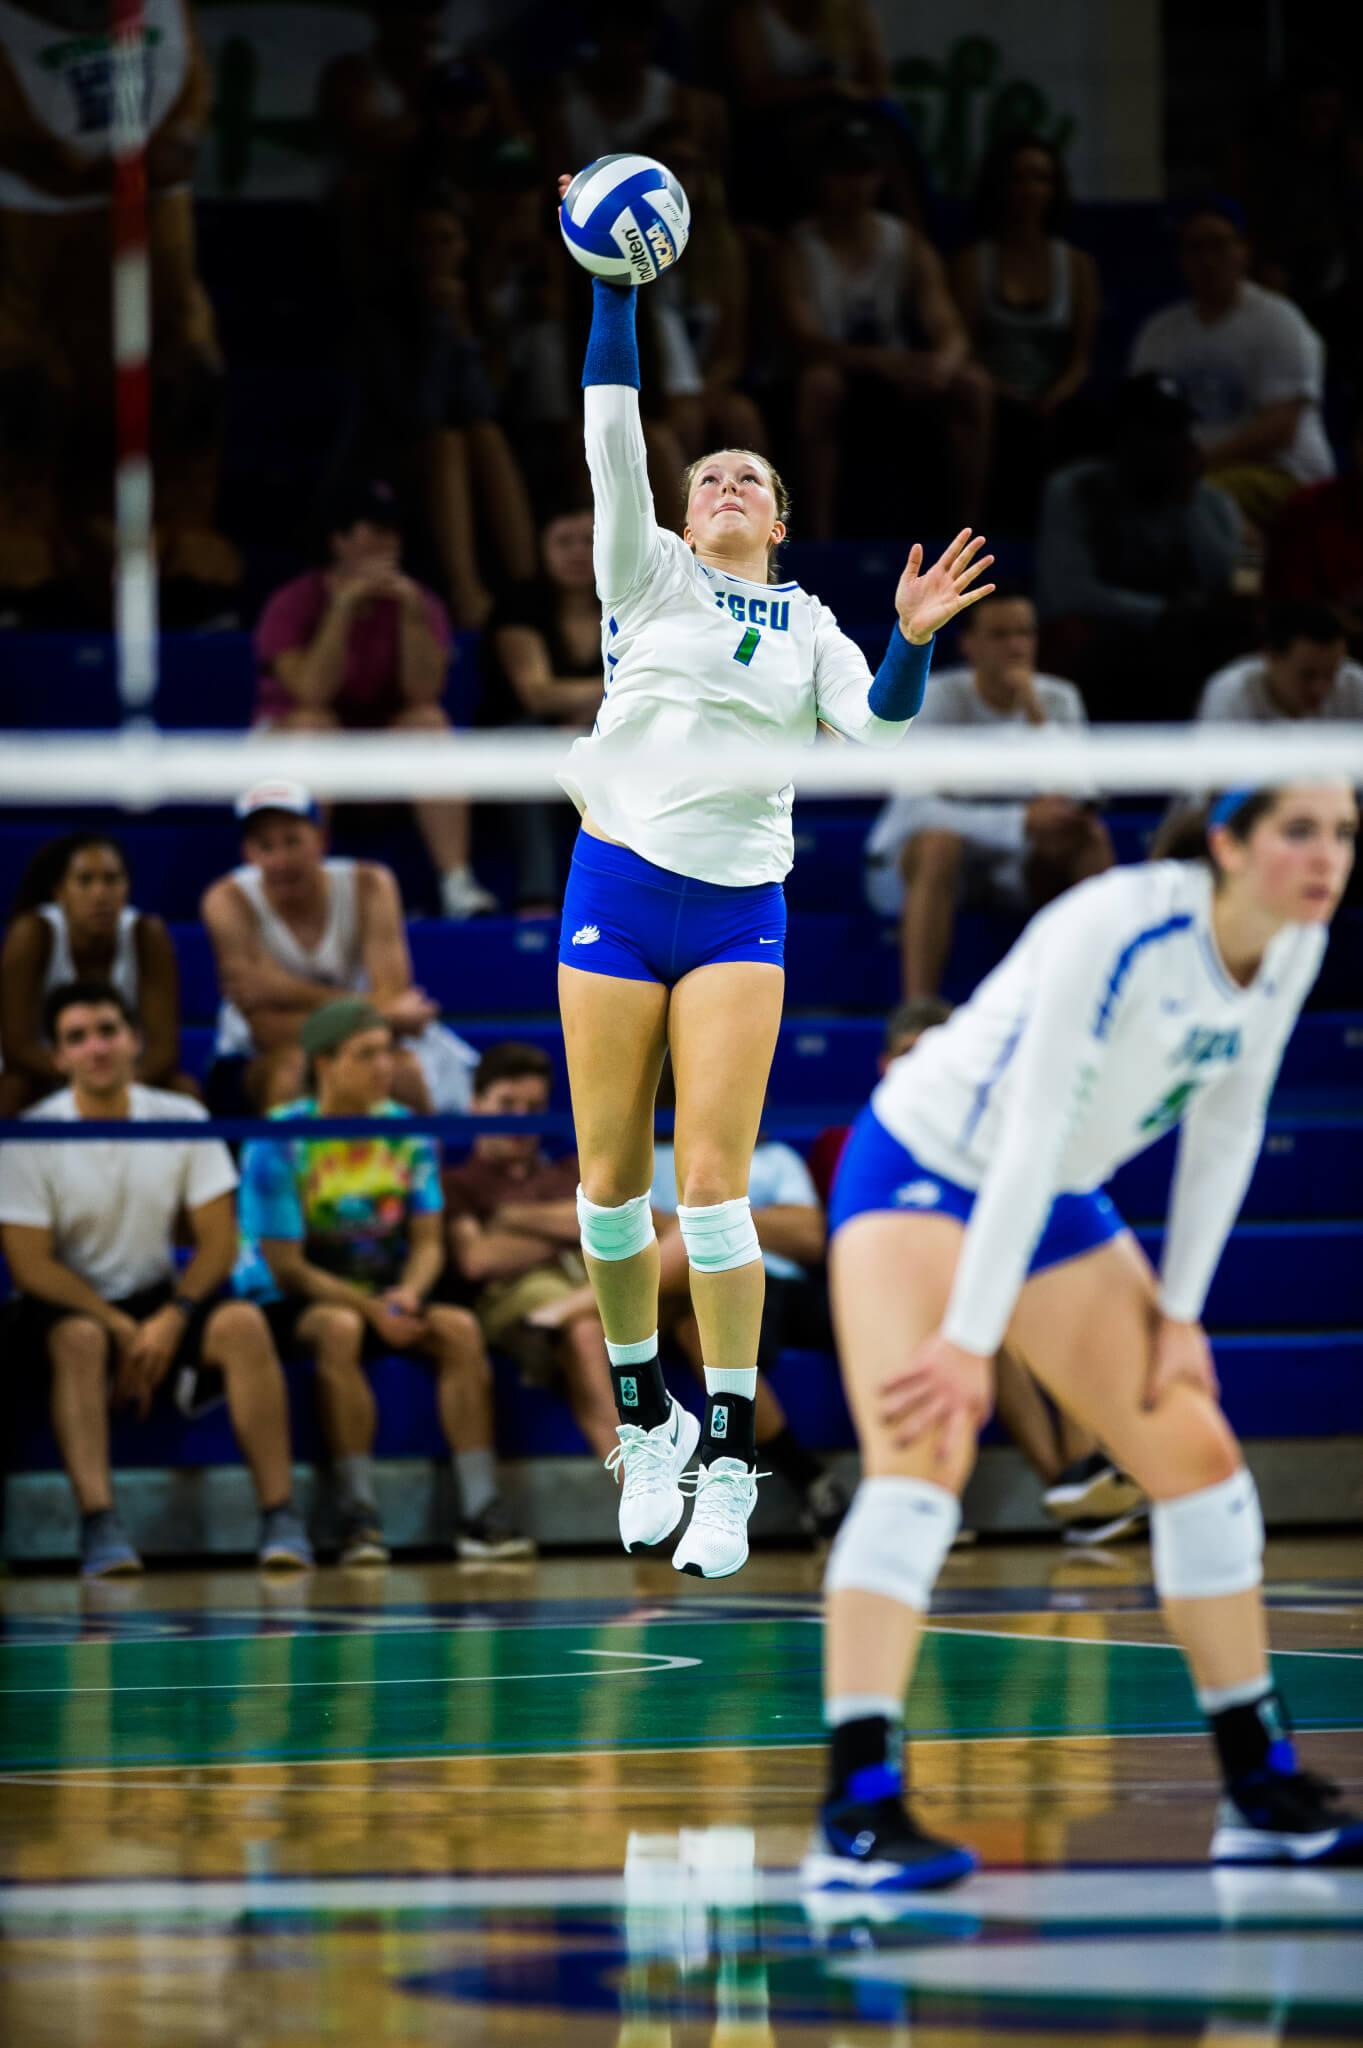 Preview: Volleyball vs. Stetson